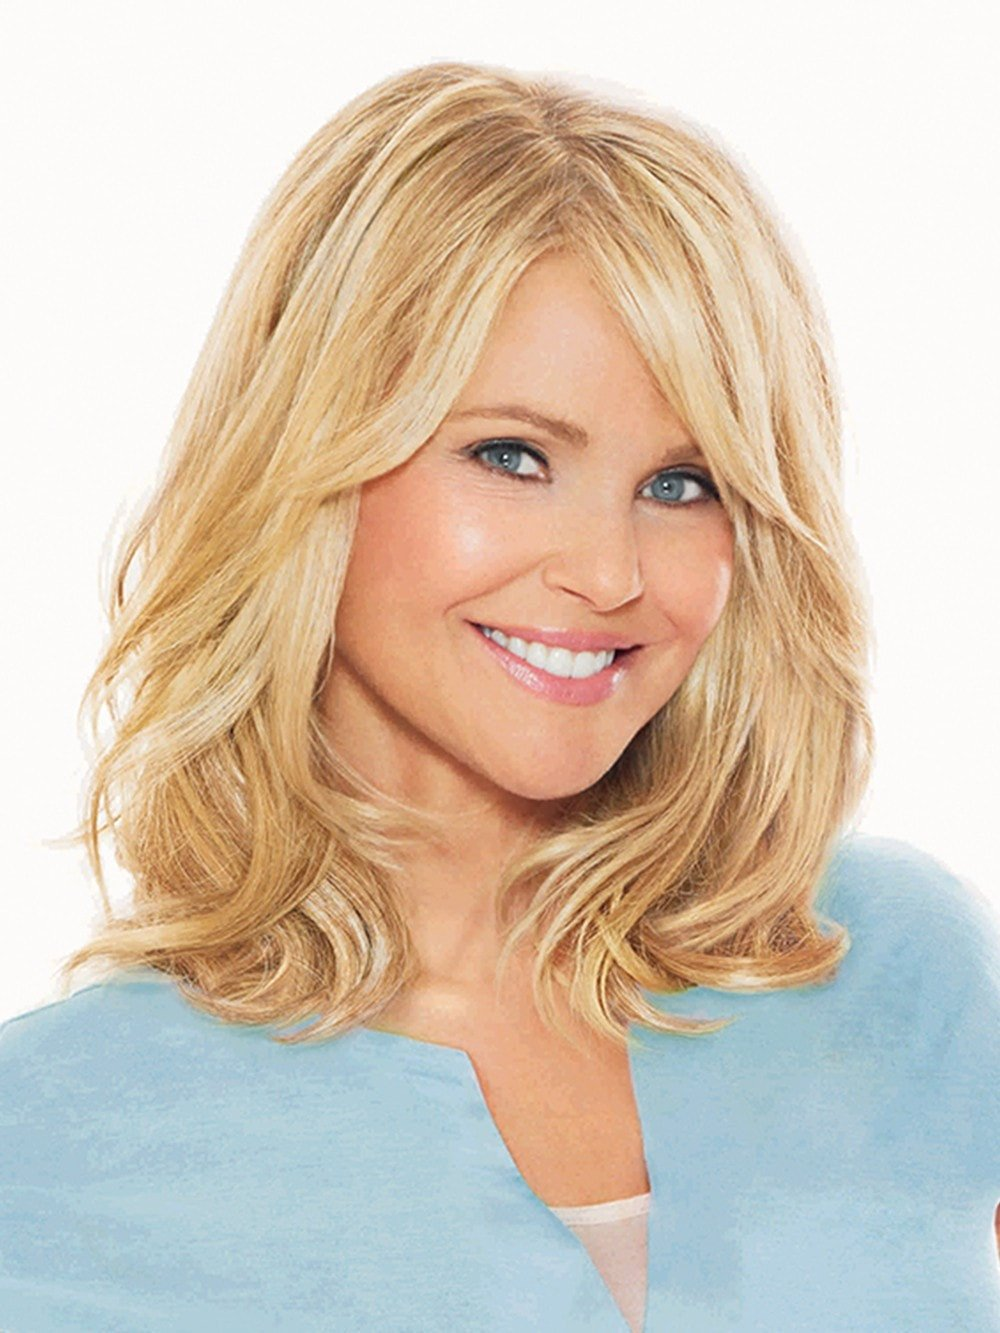 "12"" HAIR EXTENSION by Christie Brinkley in HT25 